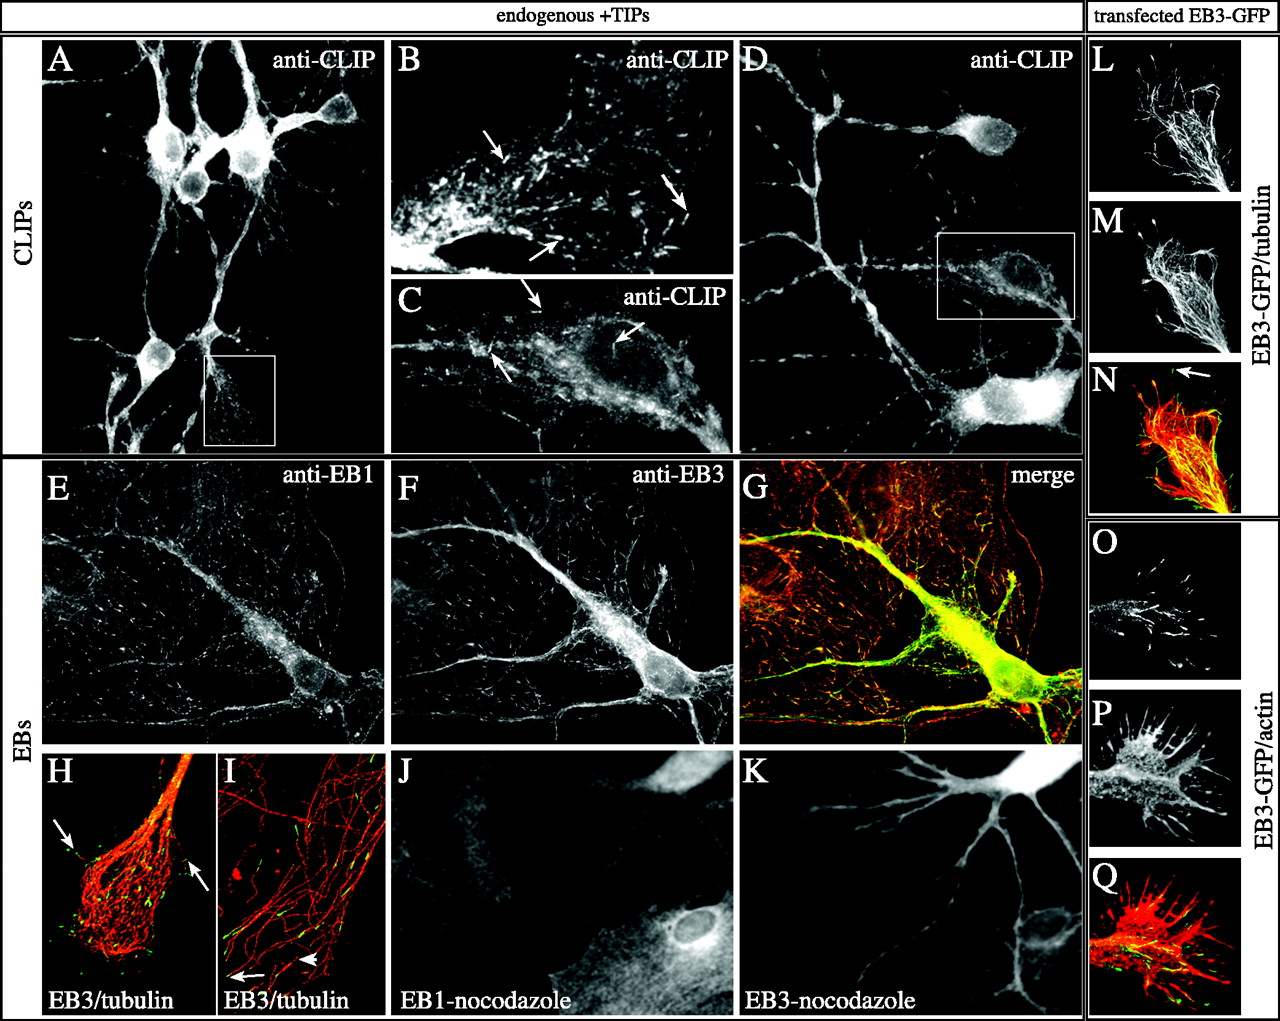 Visualization of Microtubule Growth in Cultured Neurons via